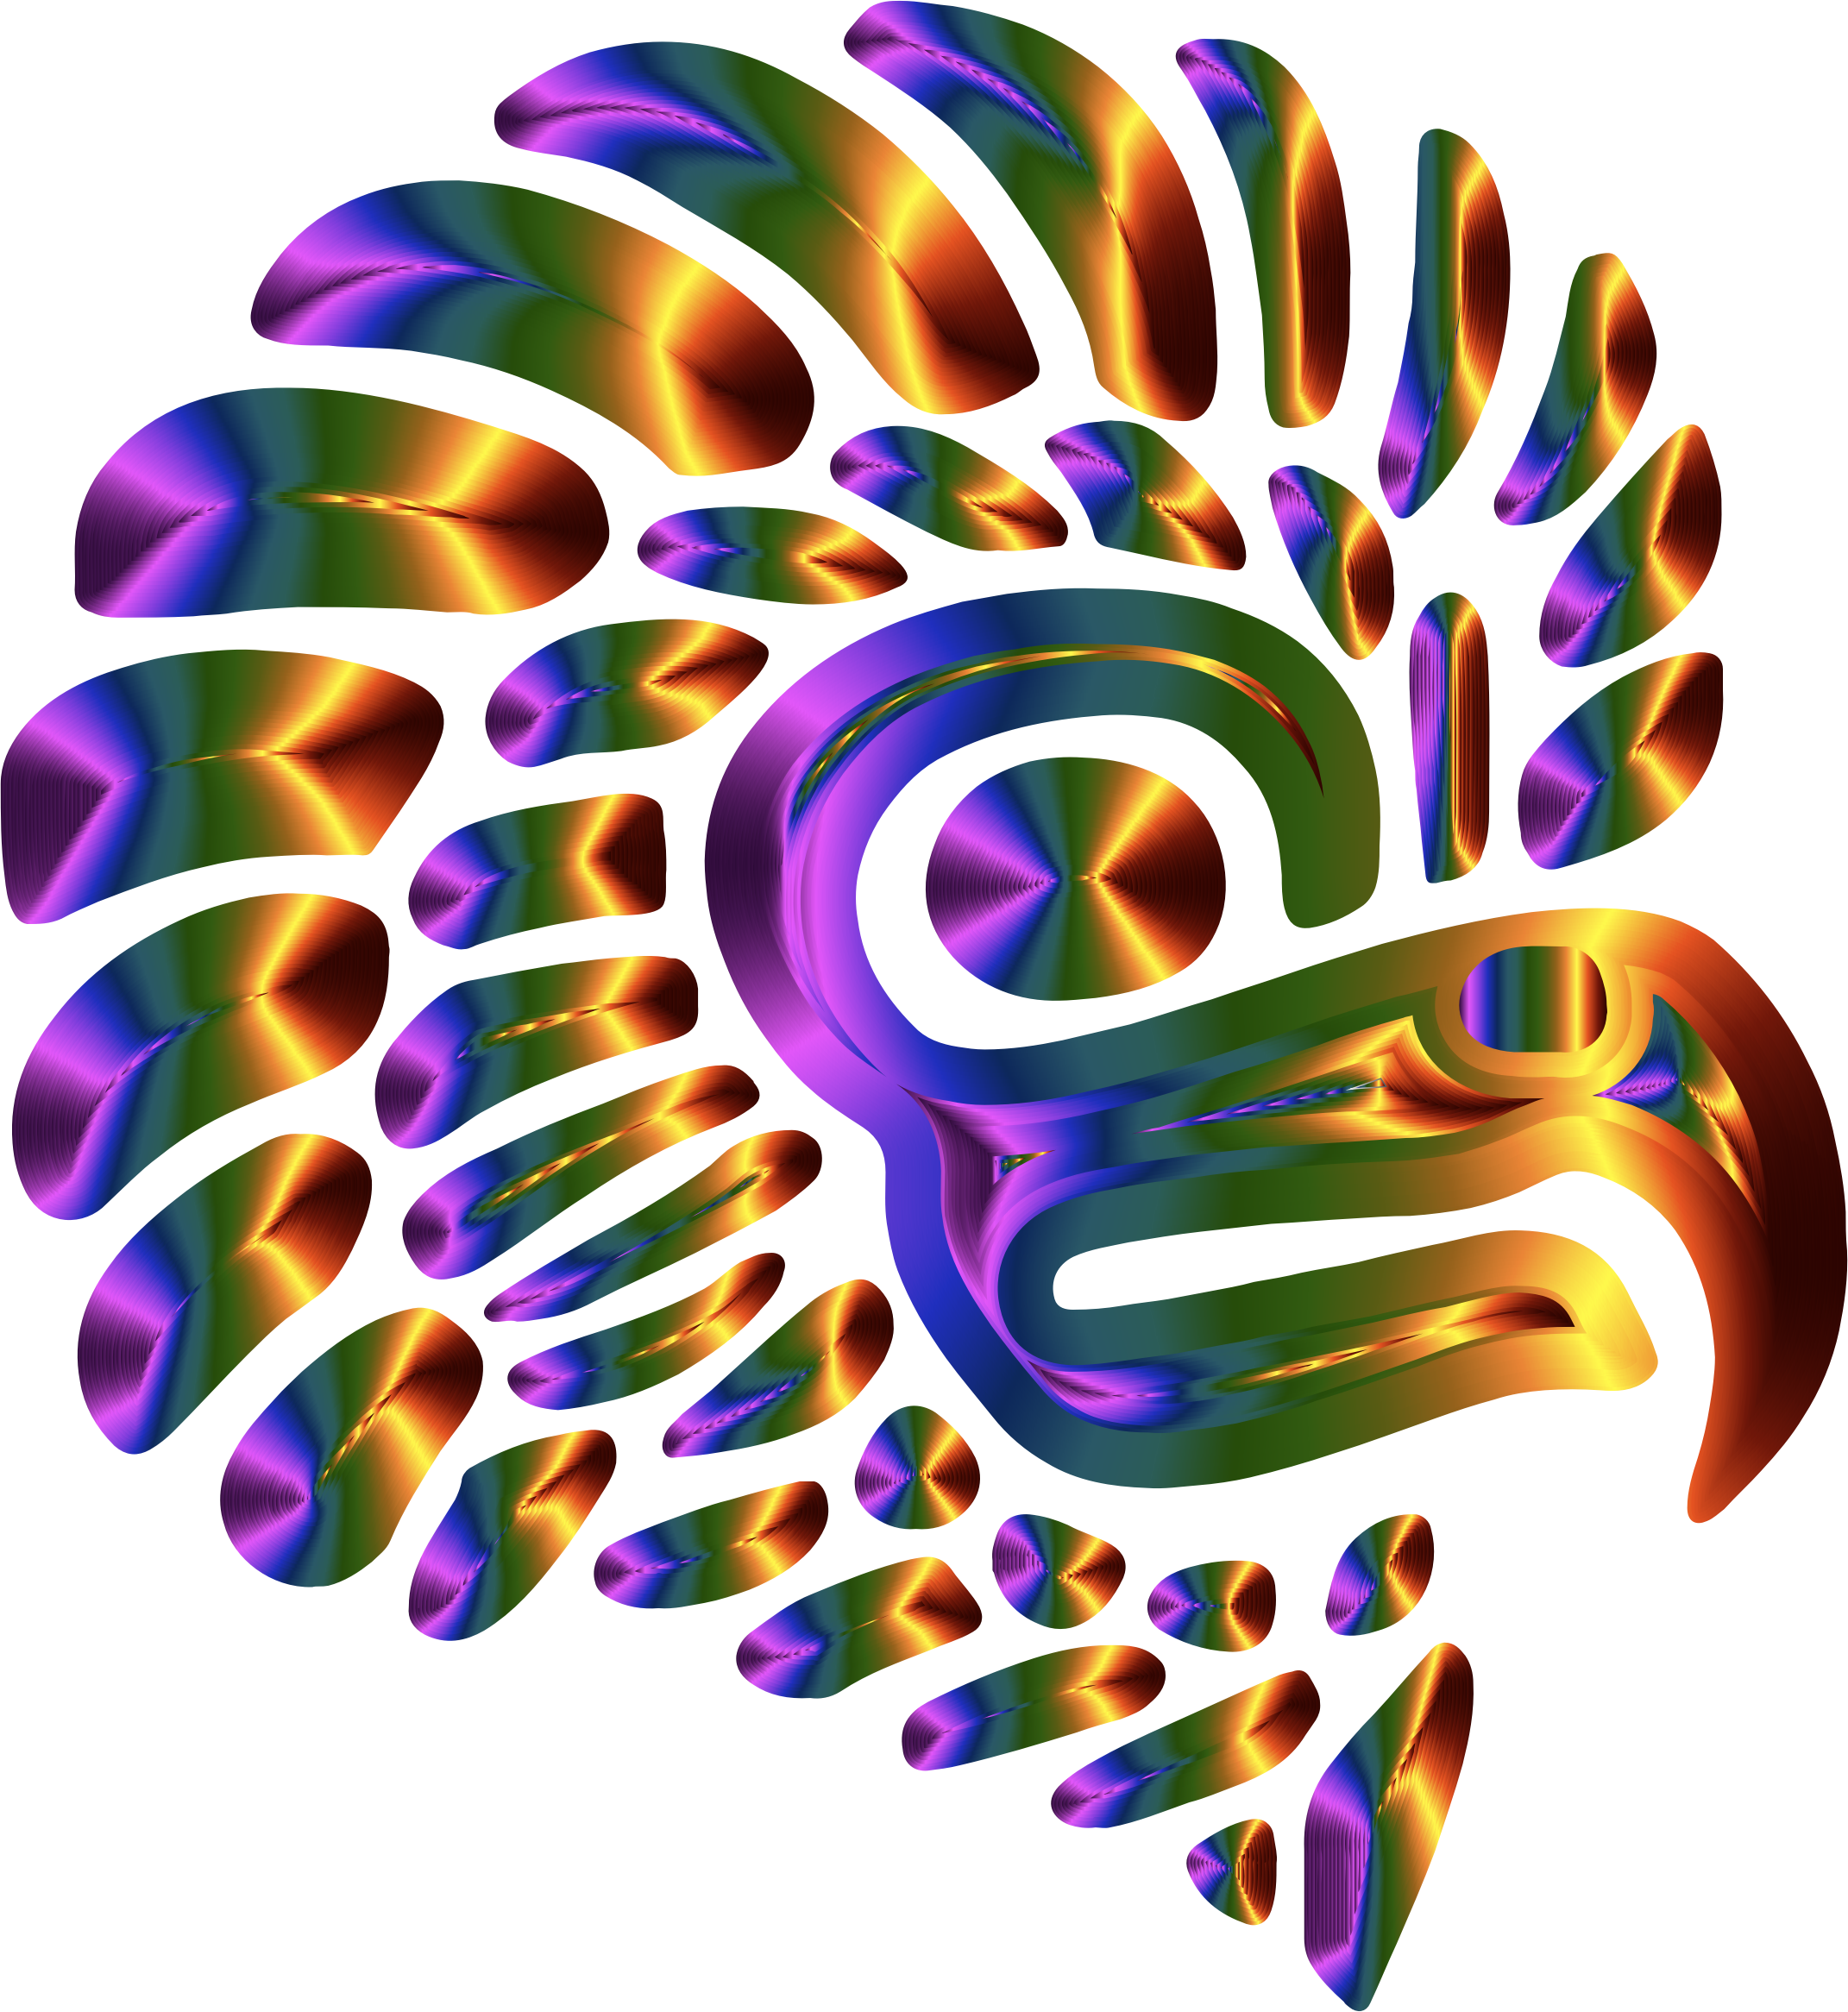 Prismatic Stylized Mexican Eagle Silhouette 5 by GDJ